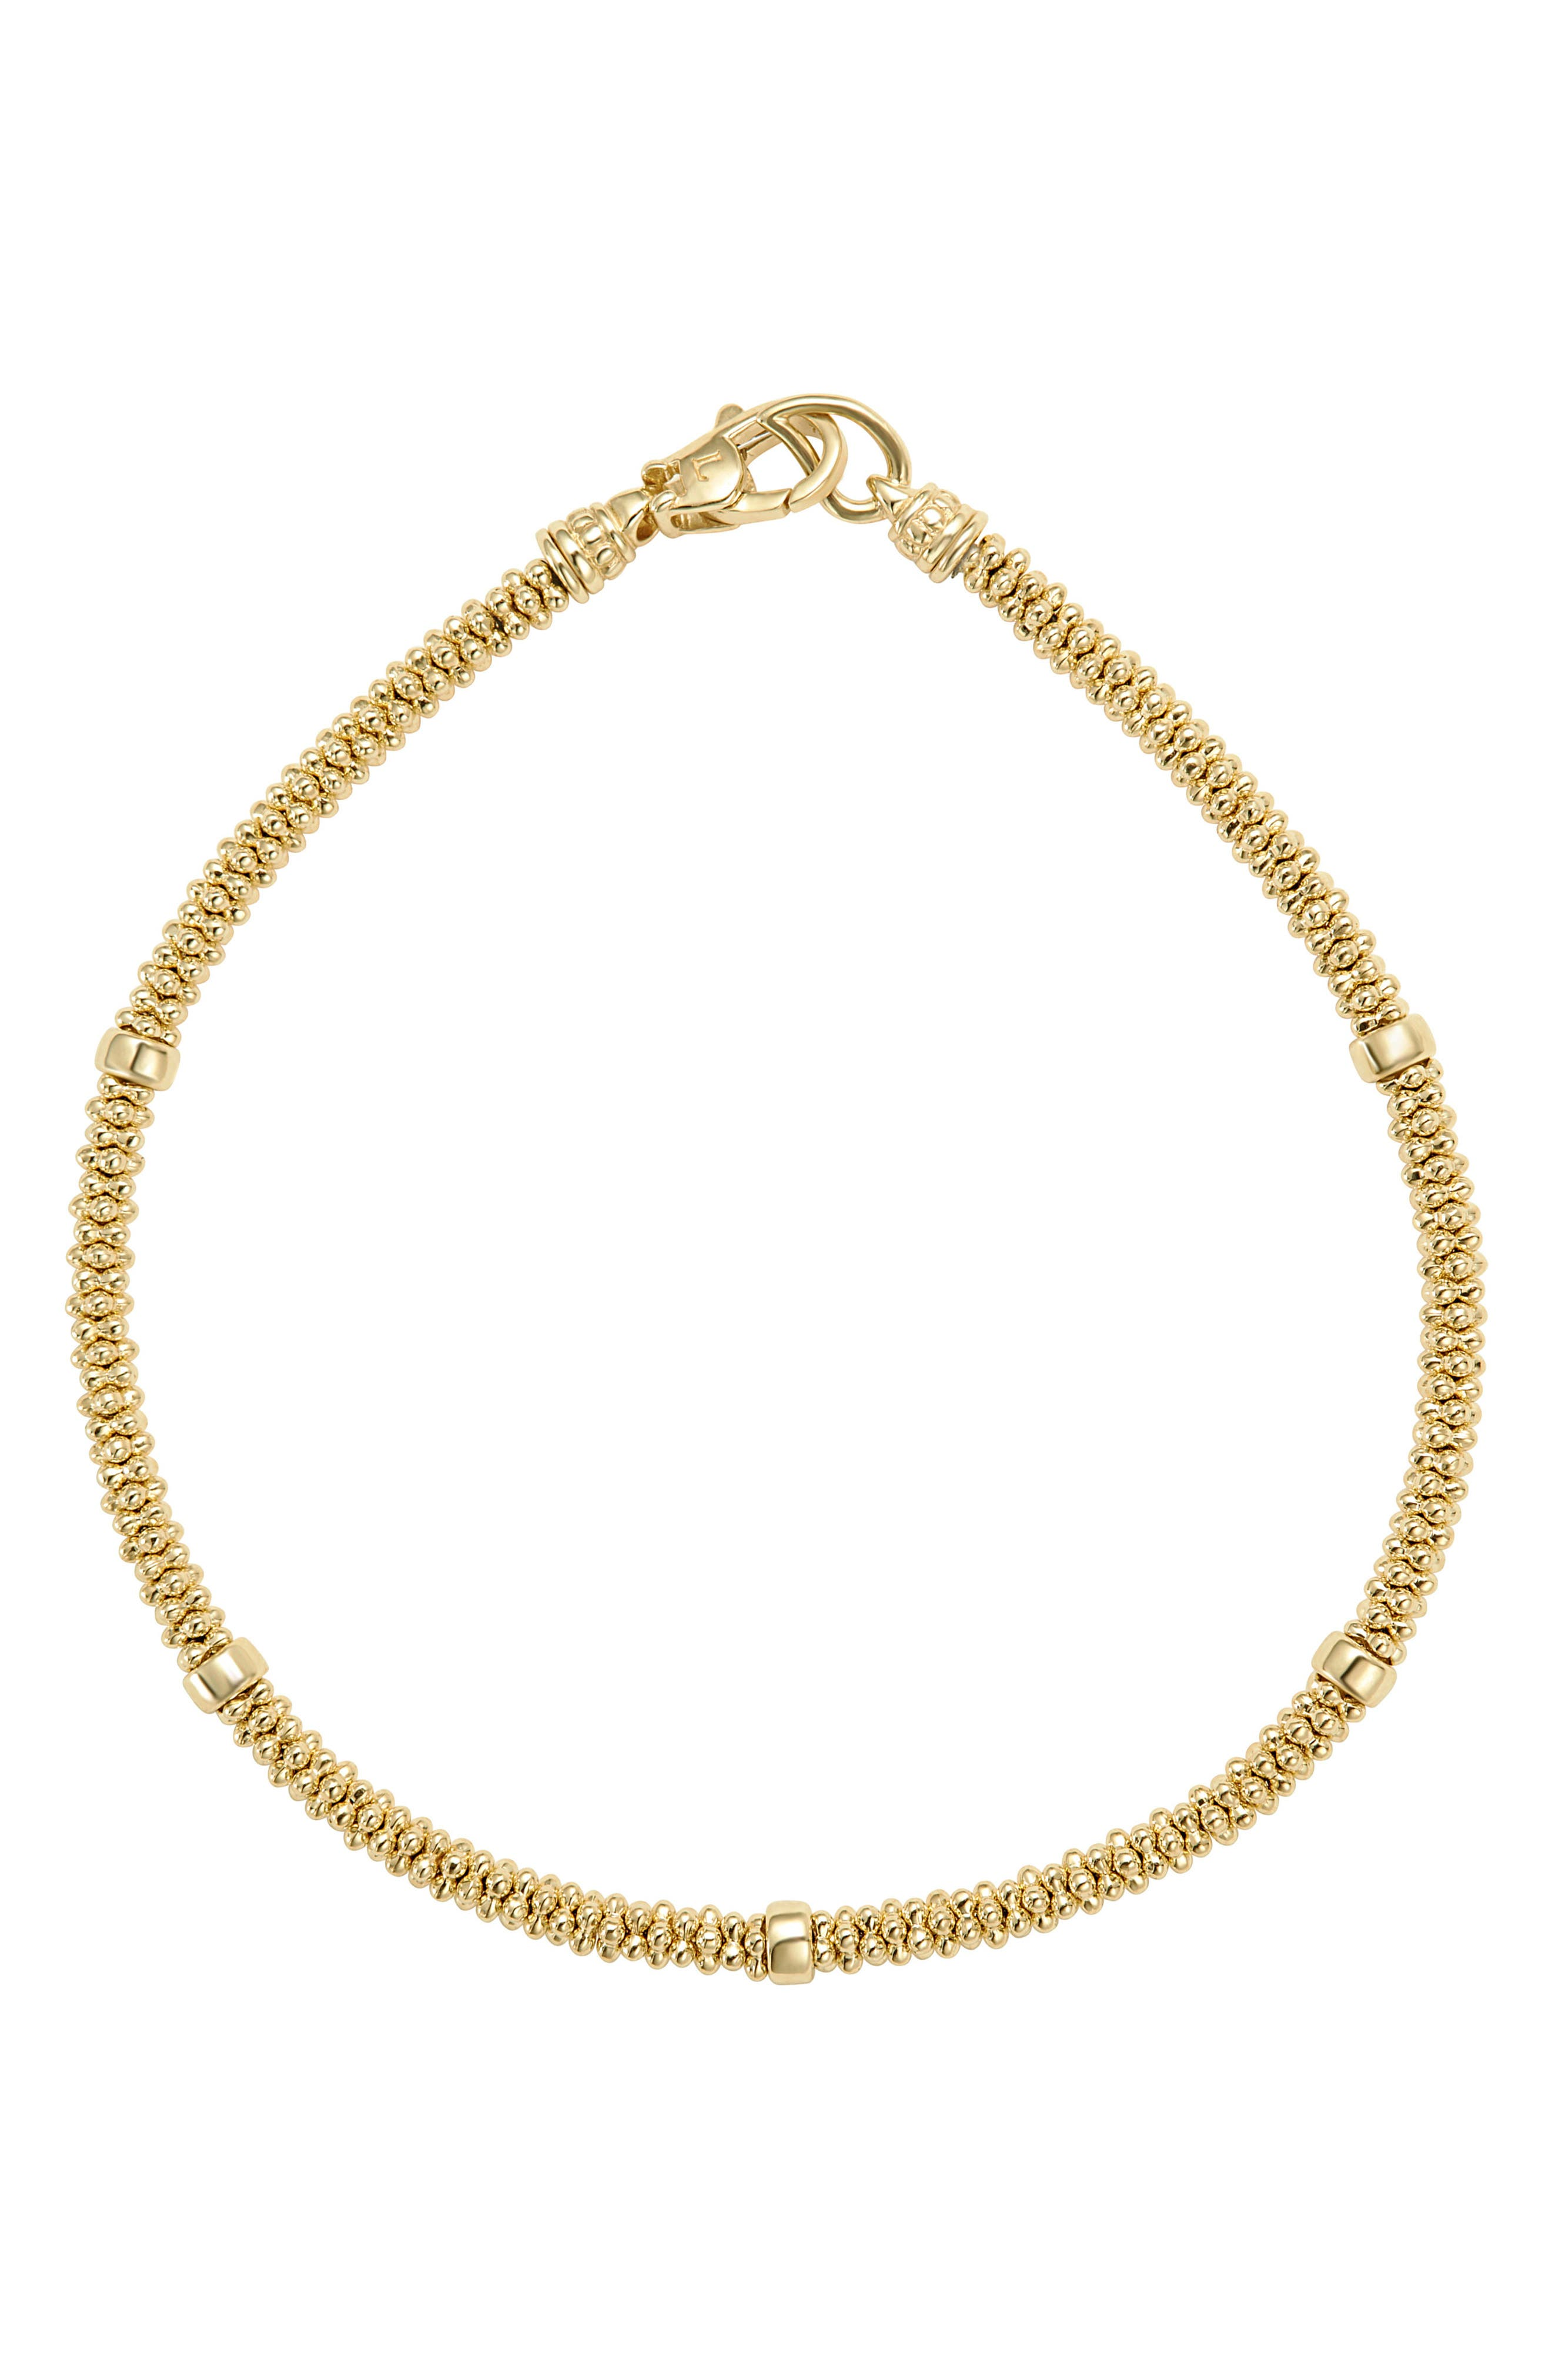 Caviar Gold Rope Bracelet,                         Main,                         color, Gold